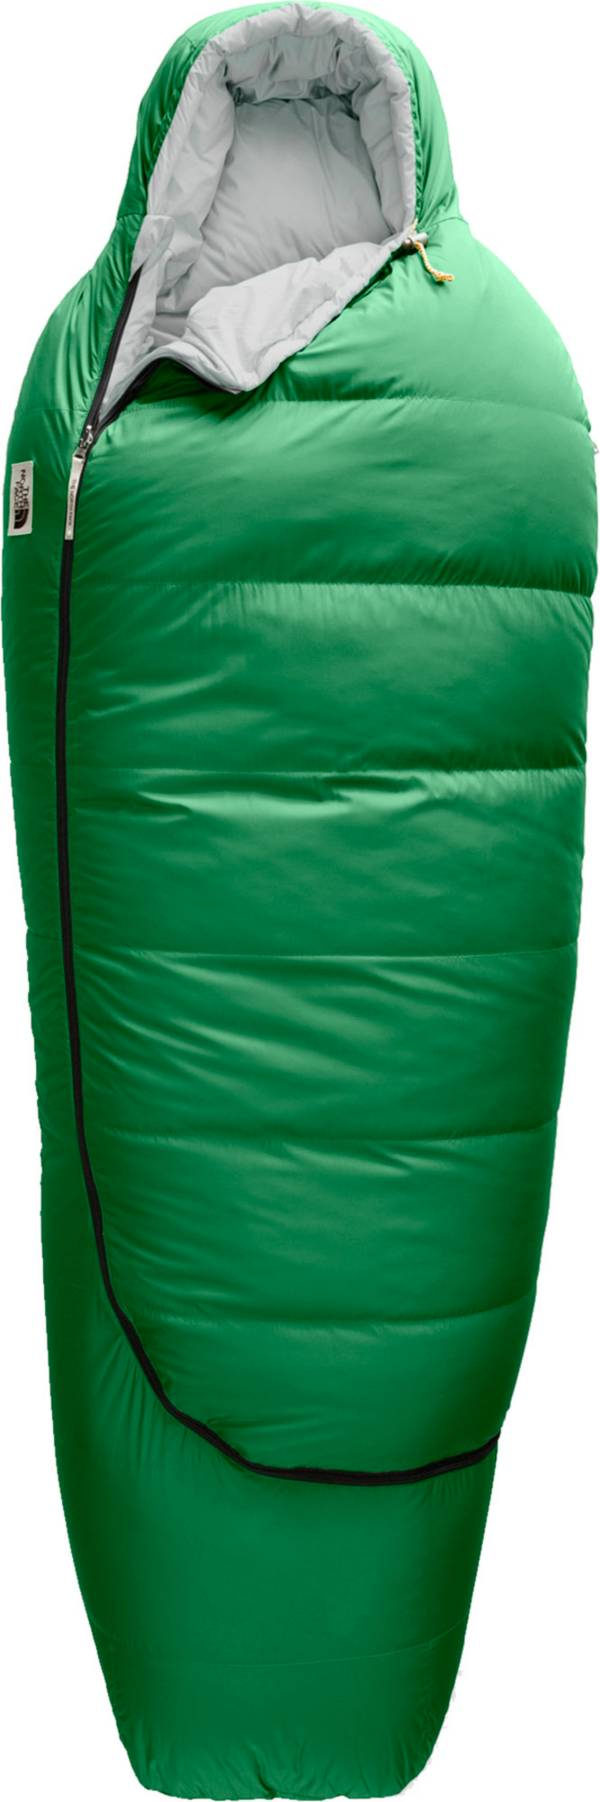 The North Face Eco Trail Down - 0 Sleeping Bag product image